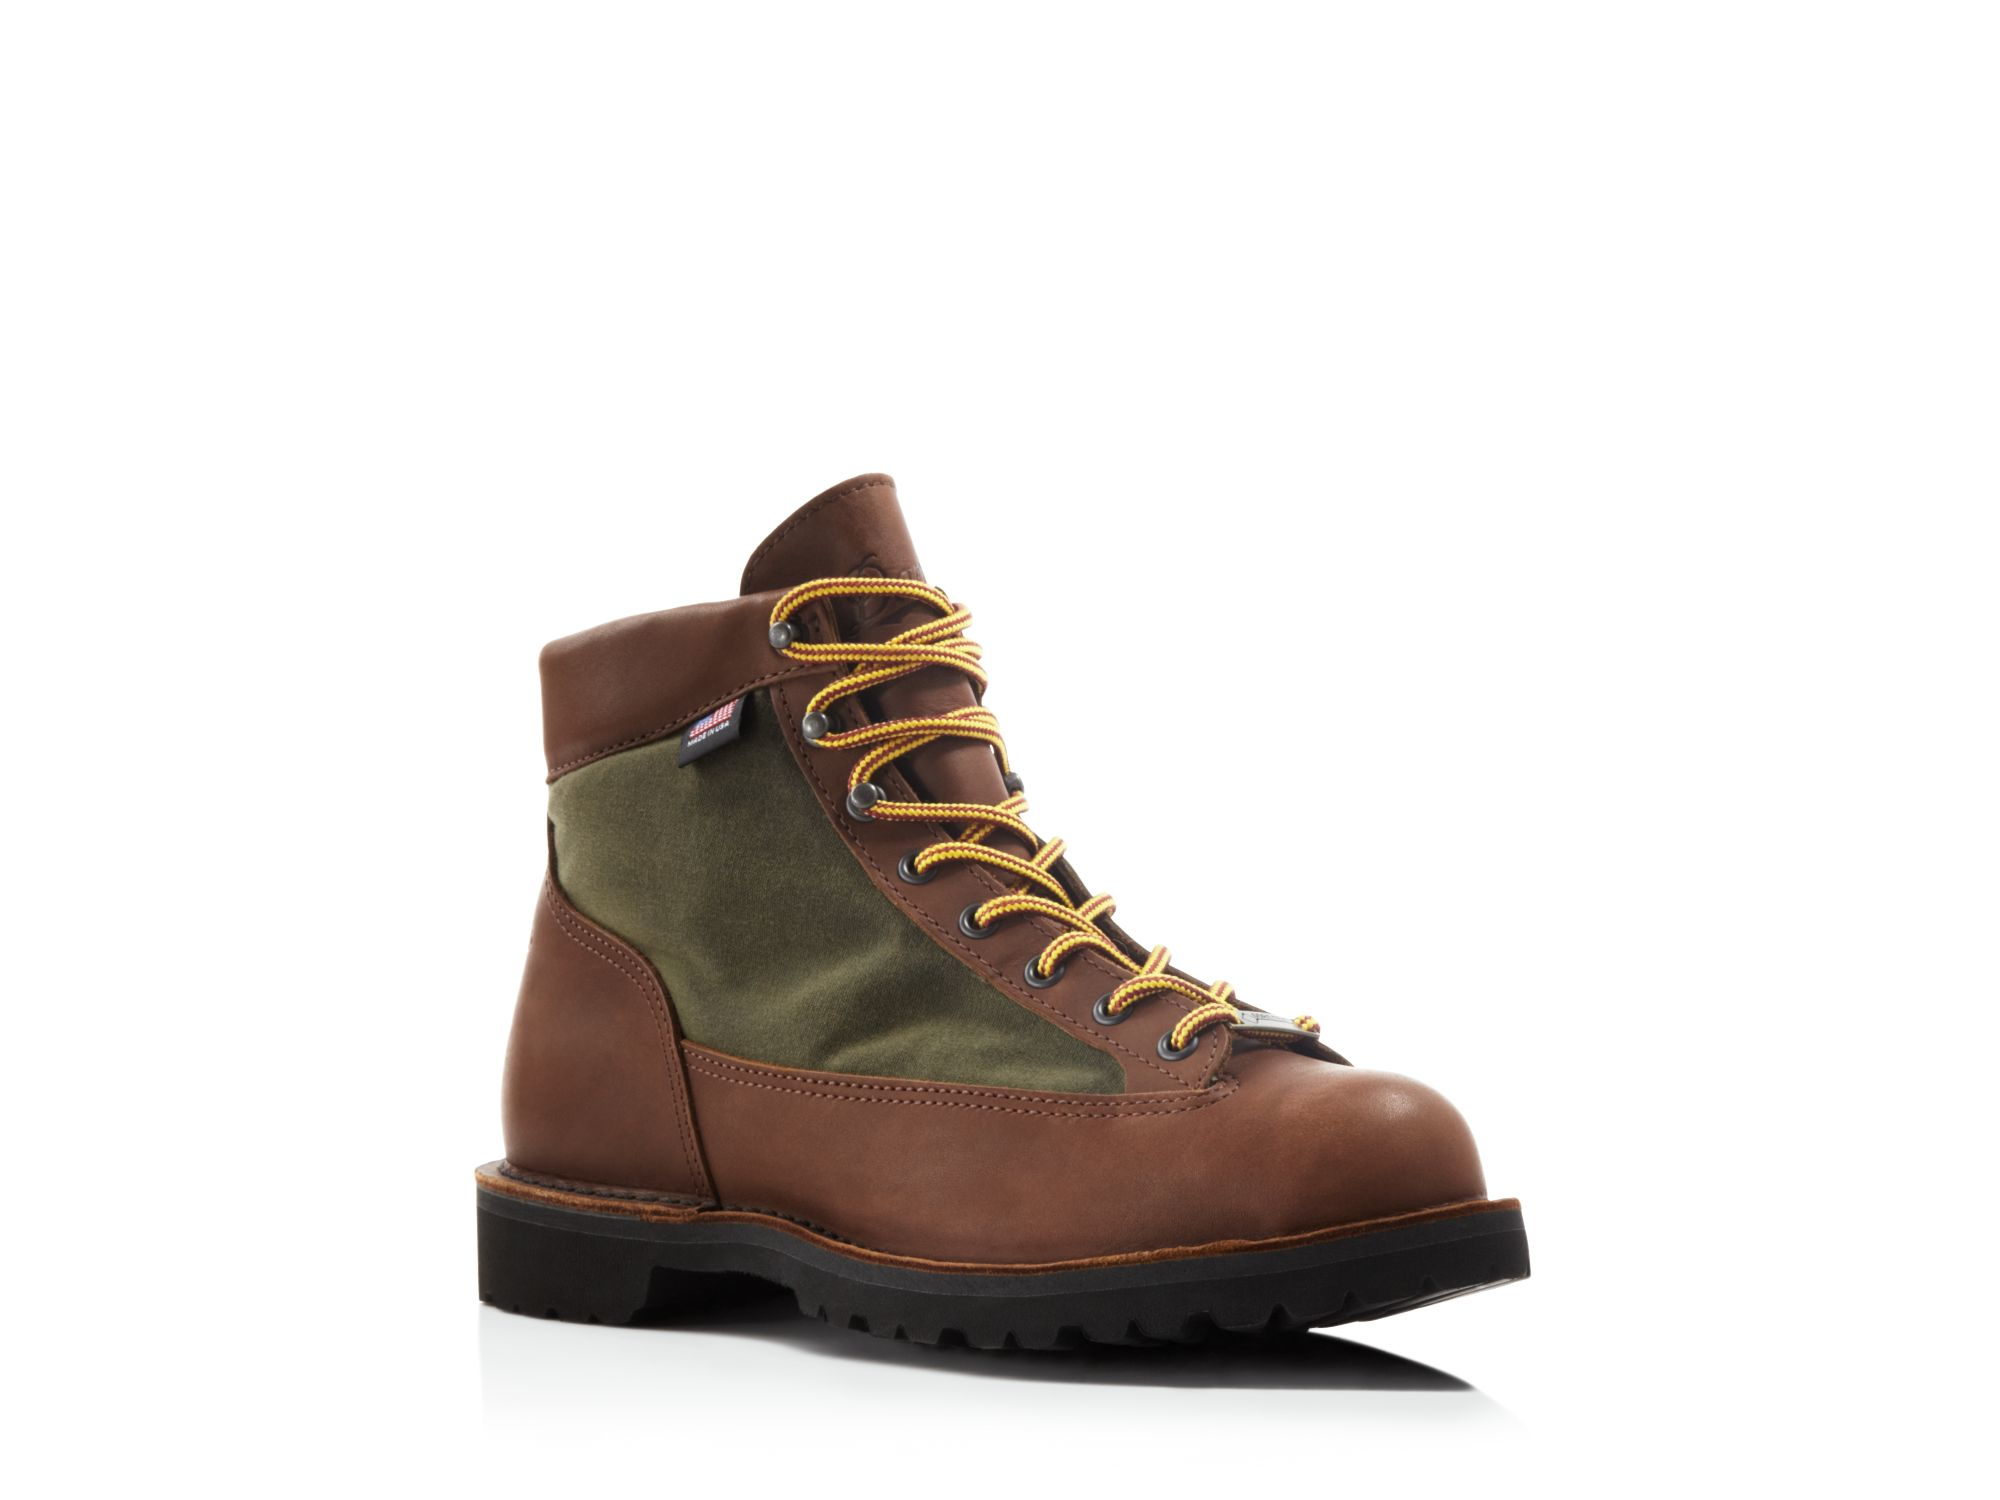 Lyst Danner Light Waterbuck Boots In Brown For Men